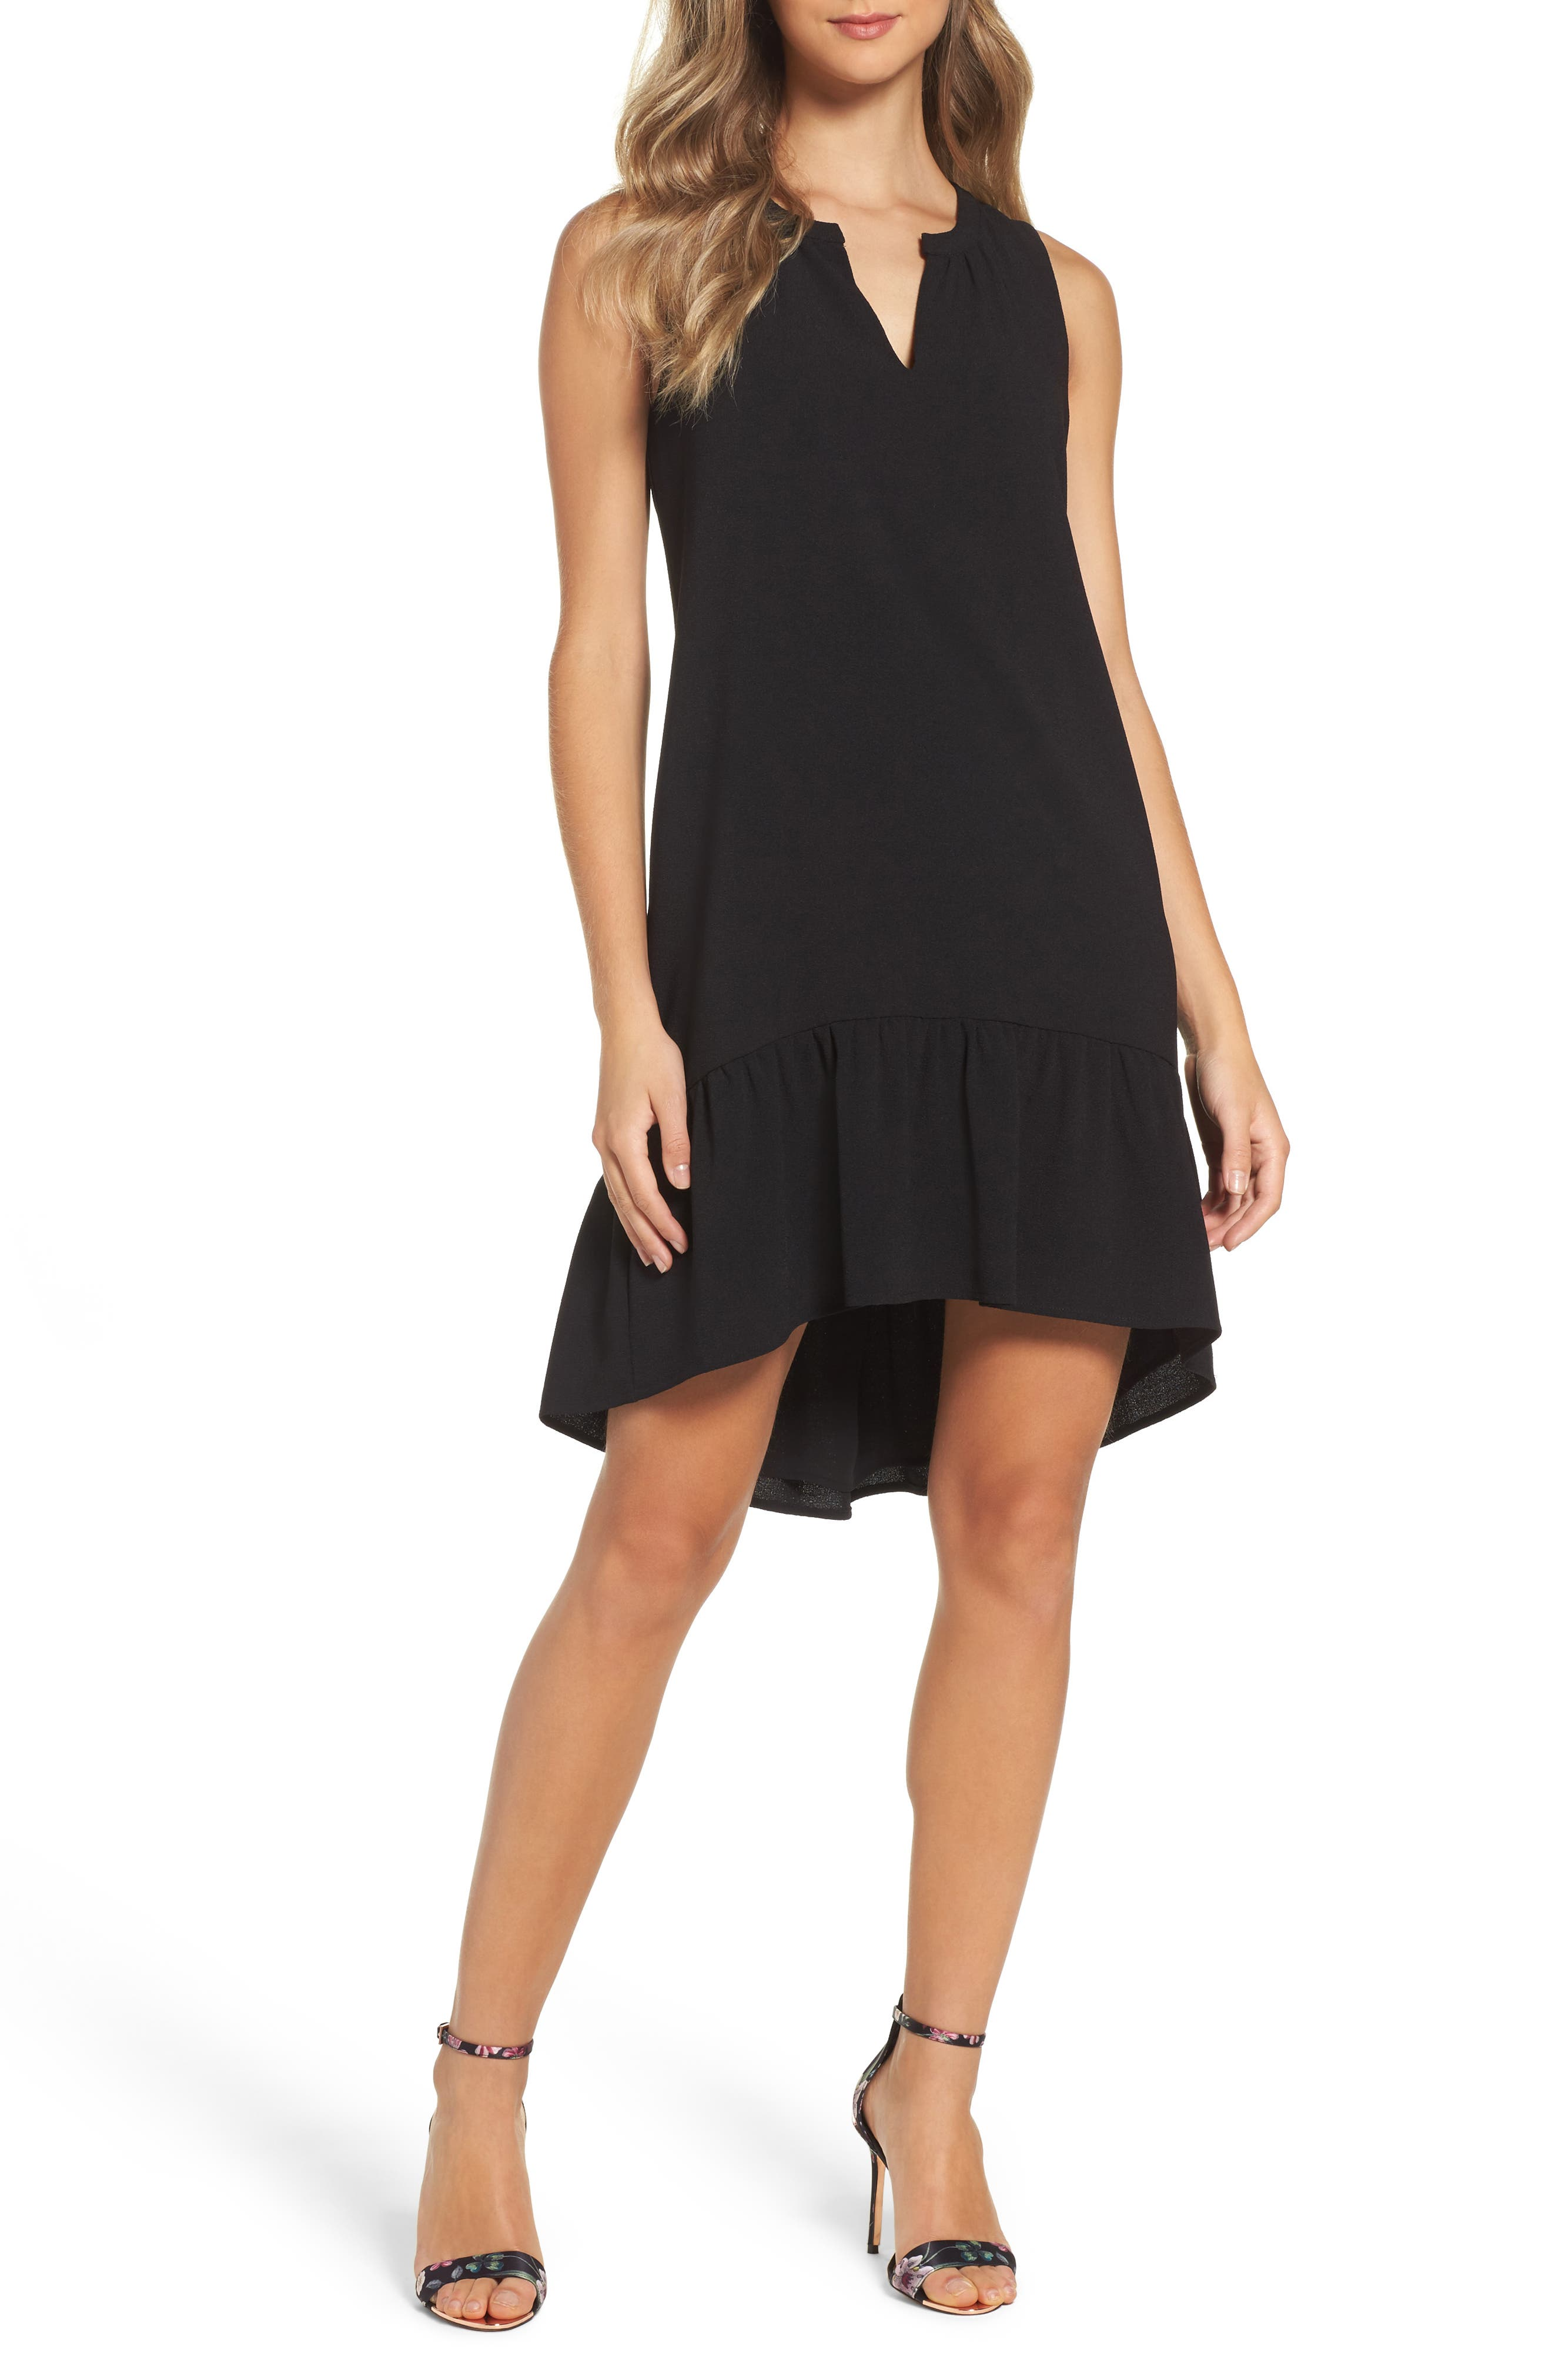 Alternate Image 1 Selected - Charles Henry High/Low Ruffle Shift Dress (Regular & Petite)